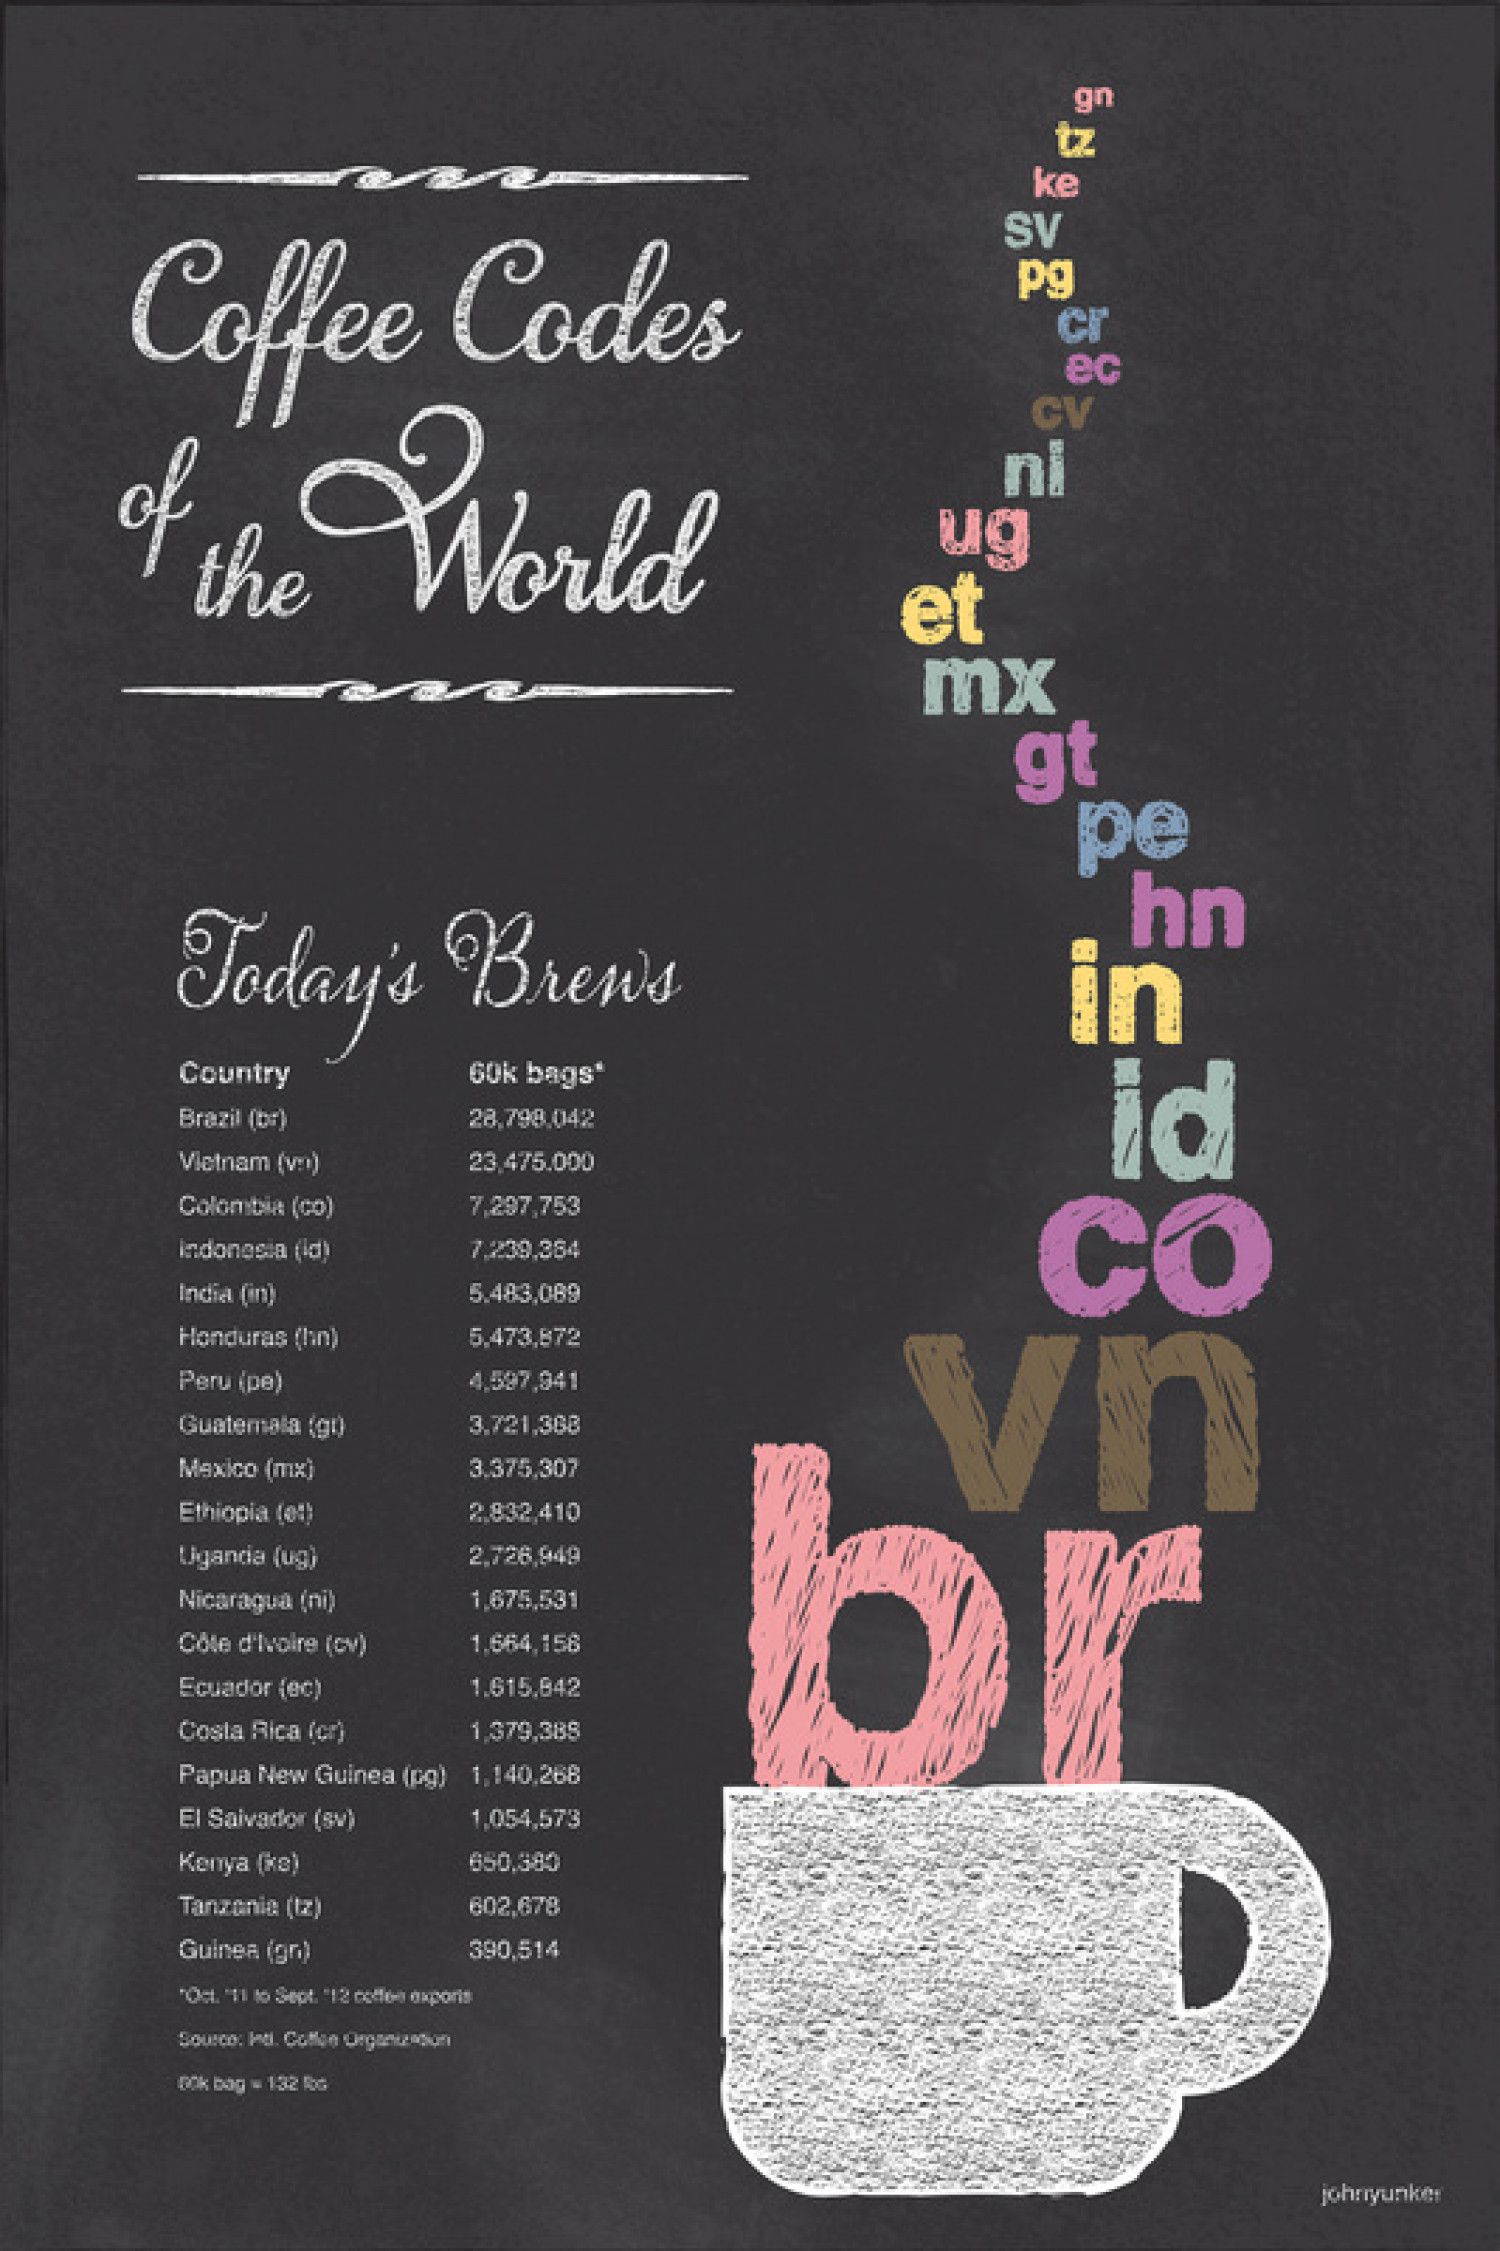 Coffee Codes of the World Infographic